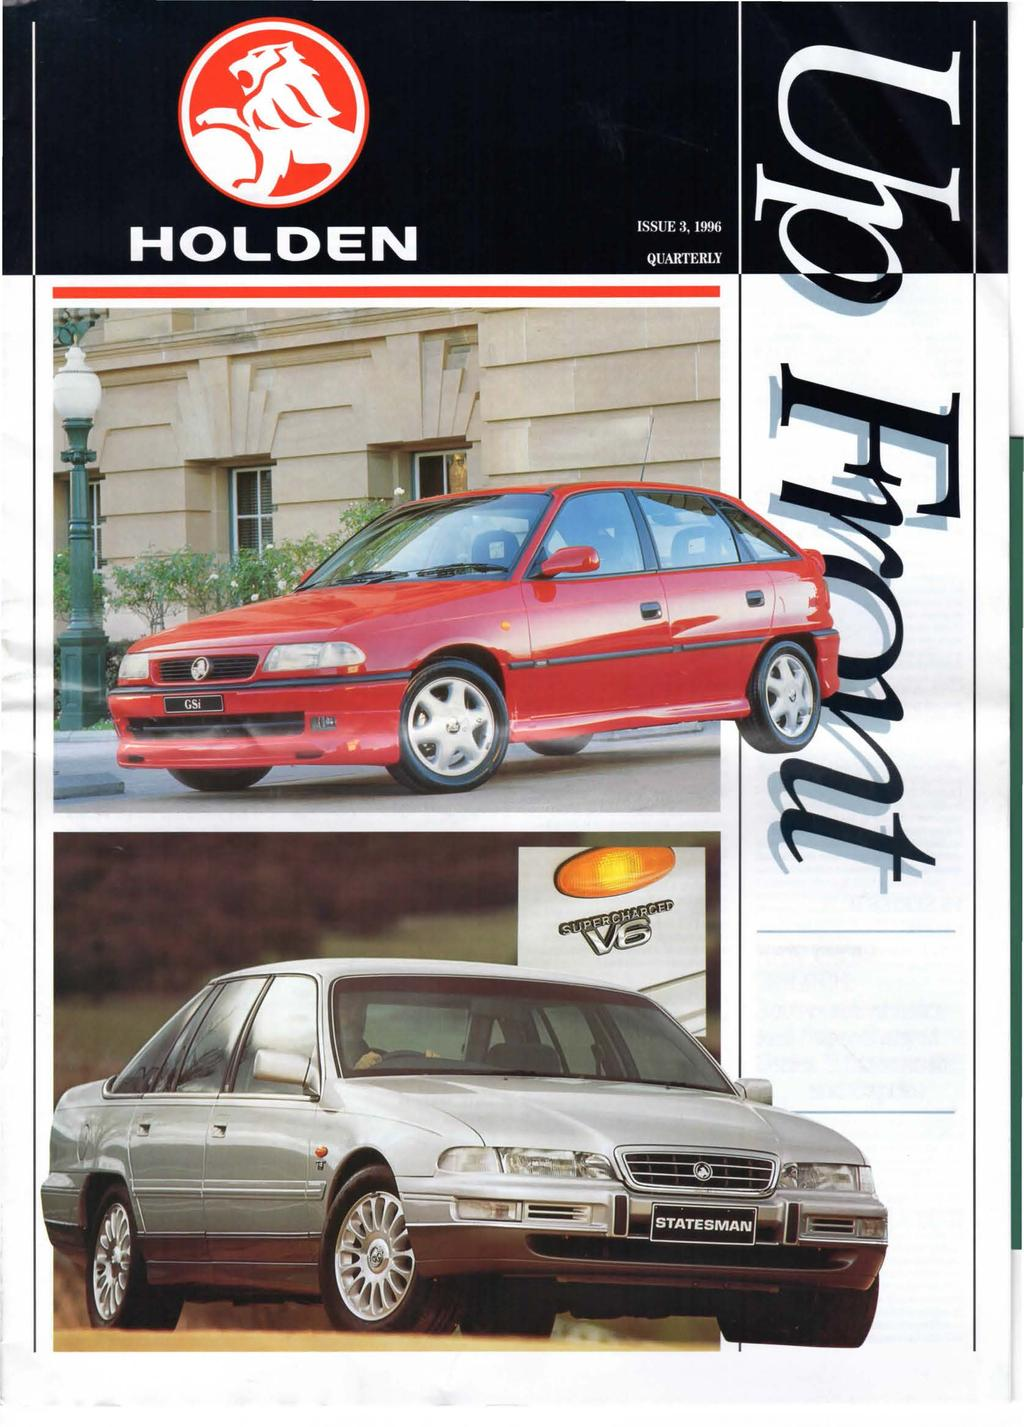 NEW FROM HOLDEN: Astranomical Astra and